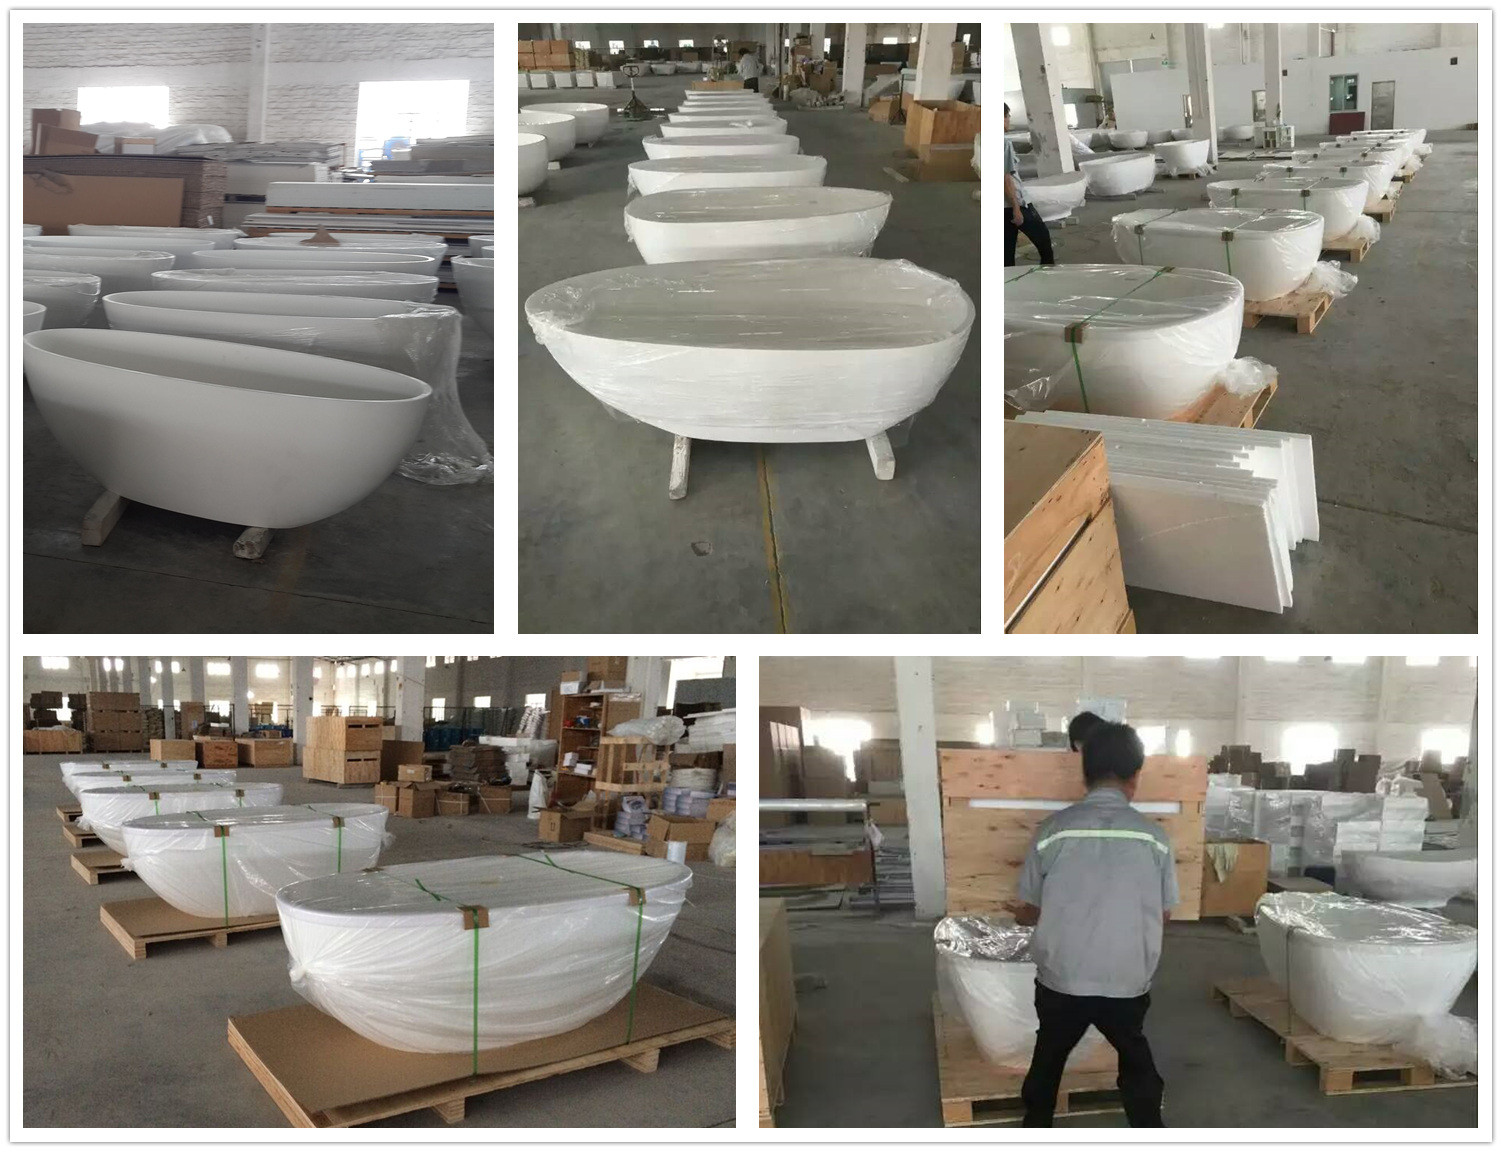 Bellissimo-Big Round 1500mm Resin Solid Surface Bathtub Bs-8615 - Bellissimo-9